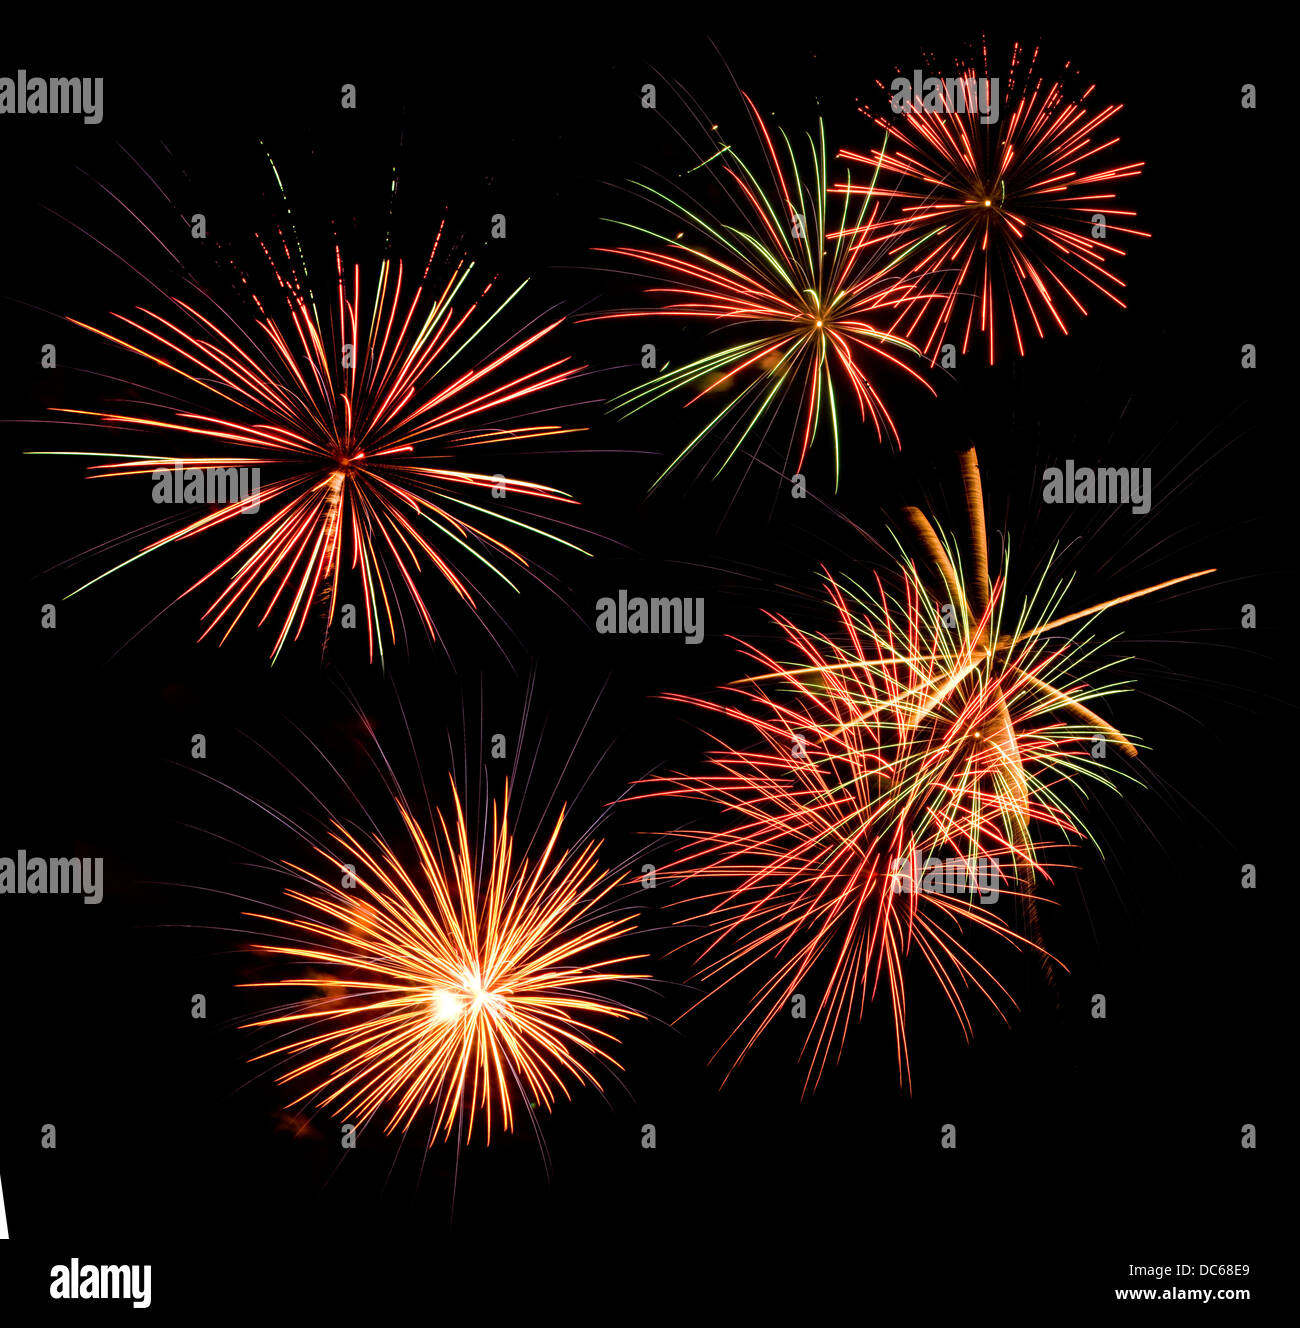 Fireworks display in a black night sky - Stock Image